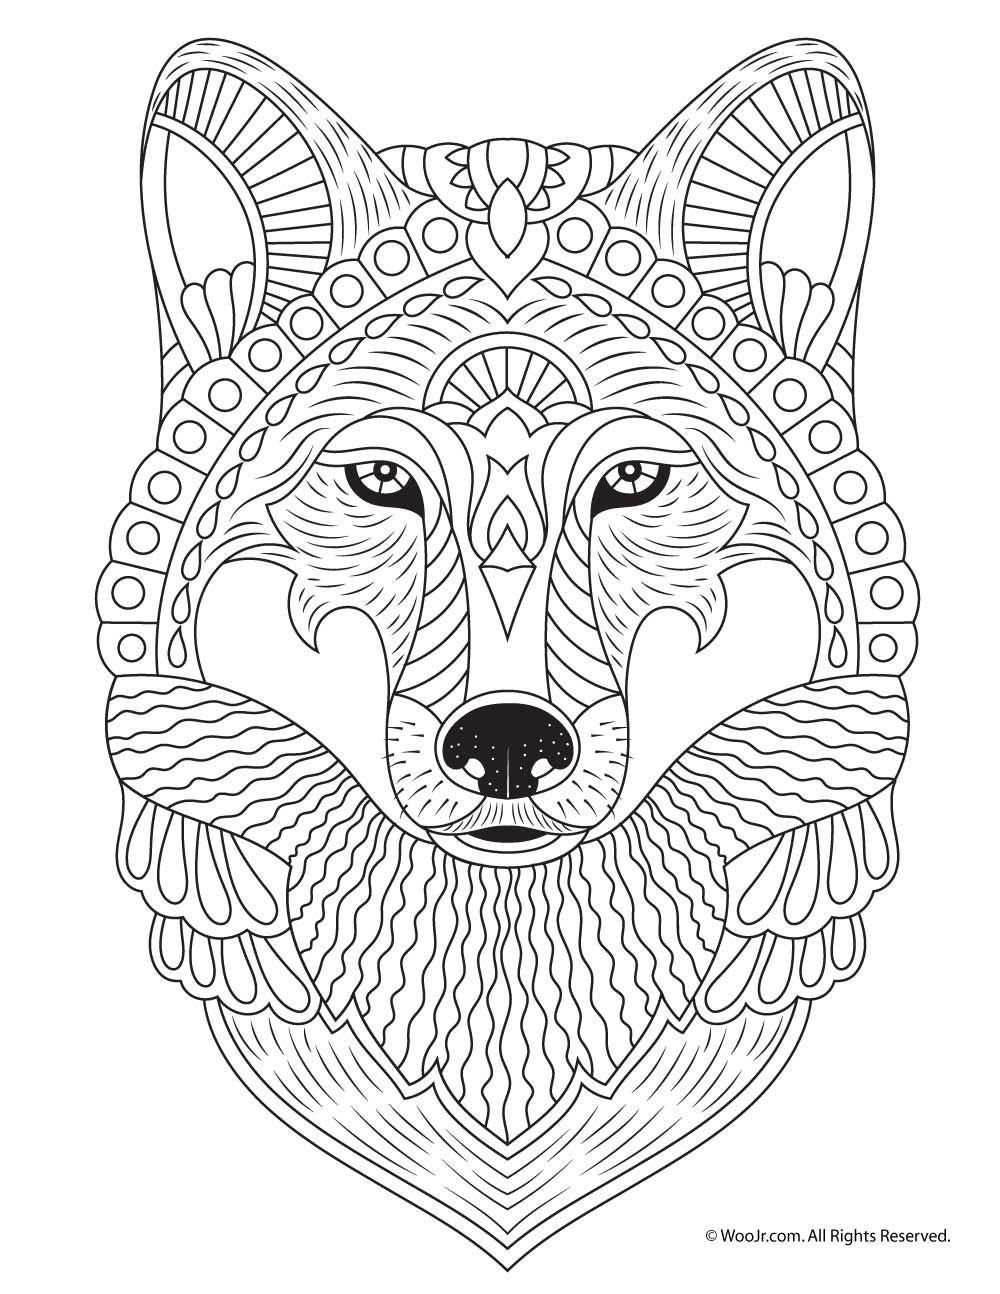 adult coloring pages animals free book elephant elephants adult coloring pages coloring pages adult animals